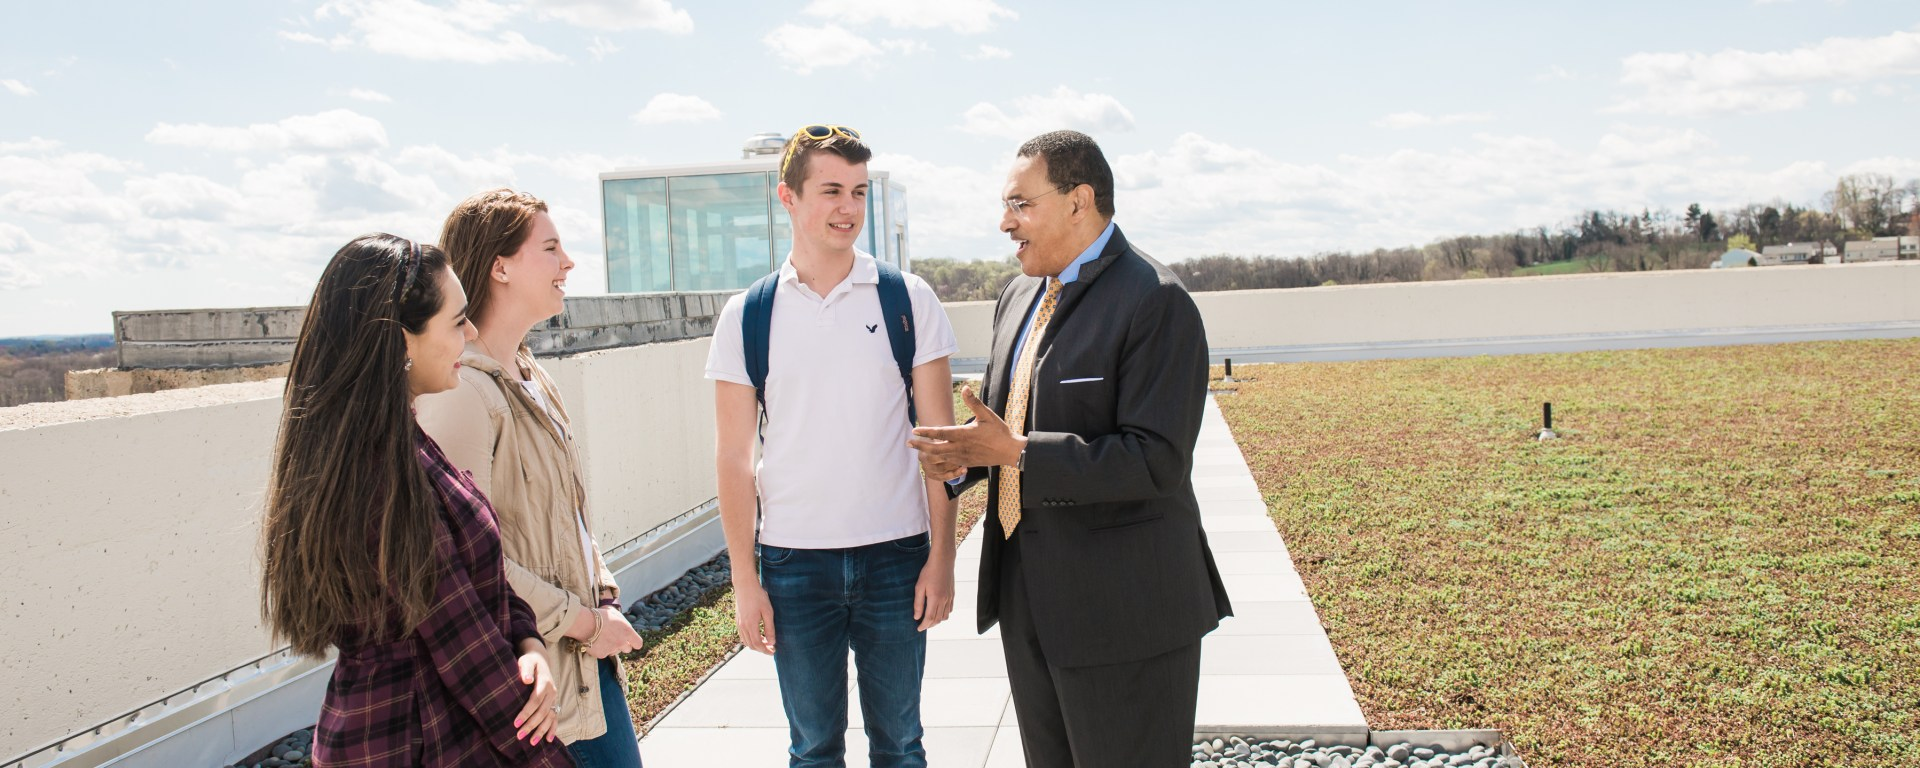 Man in suit stands with three students in casual clothes on a green roof with blue sky above.